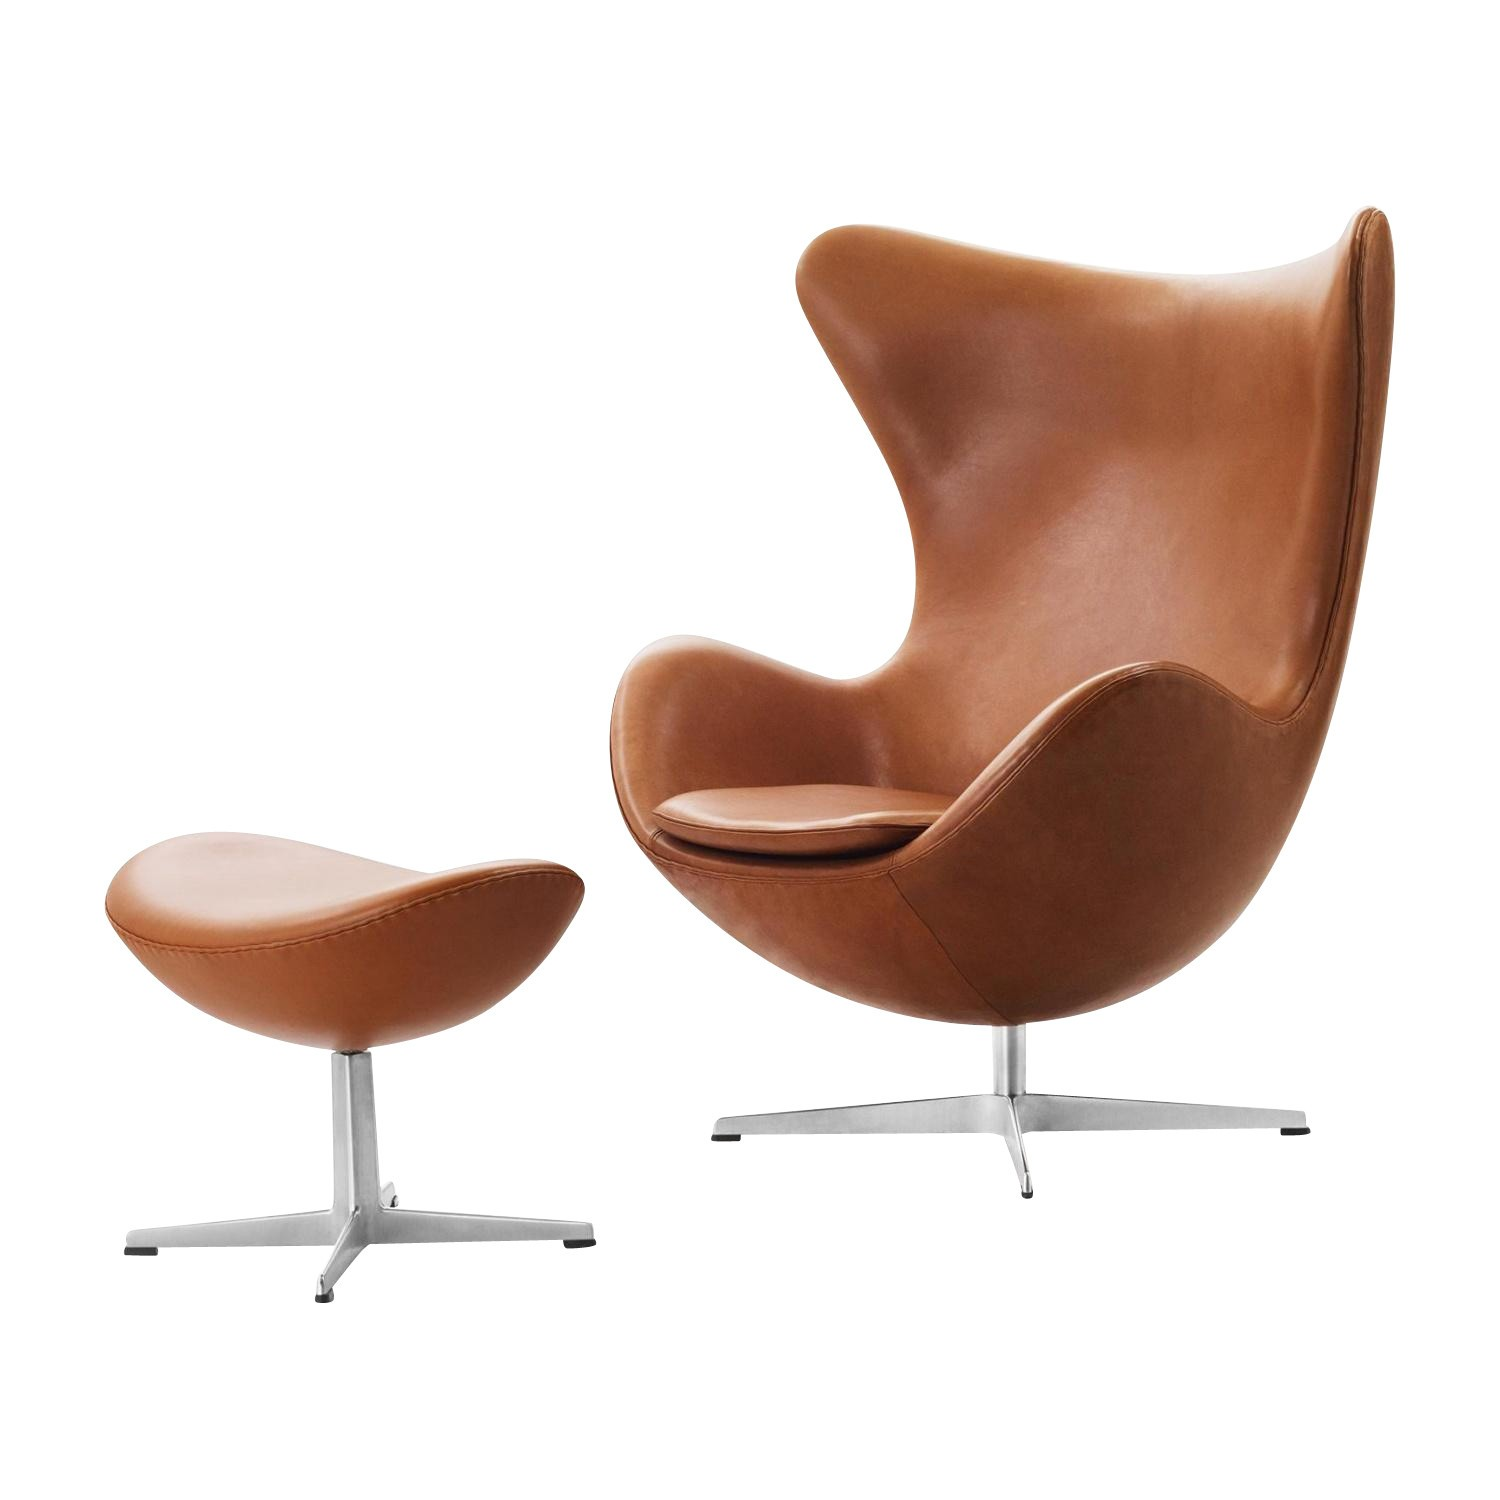 Hocker Leder Aktion Egg Chair Das Ei Sessel Hocker Leder